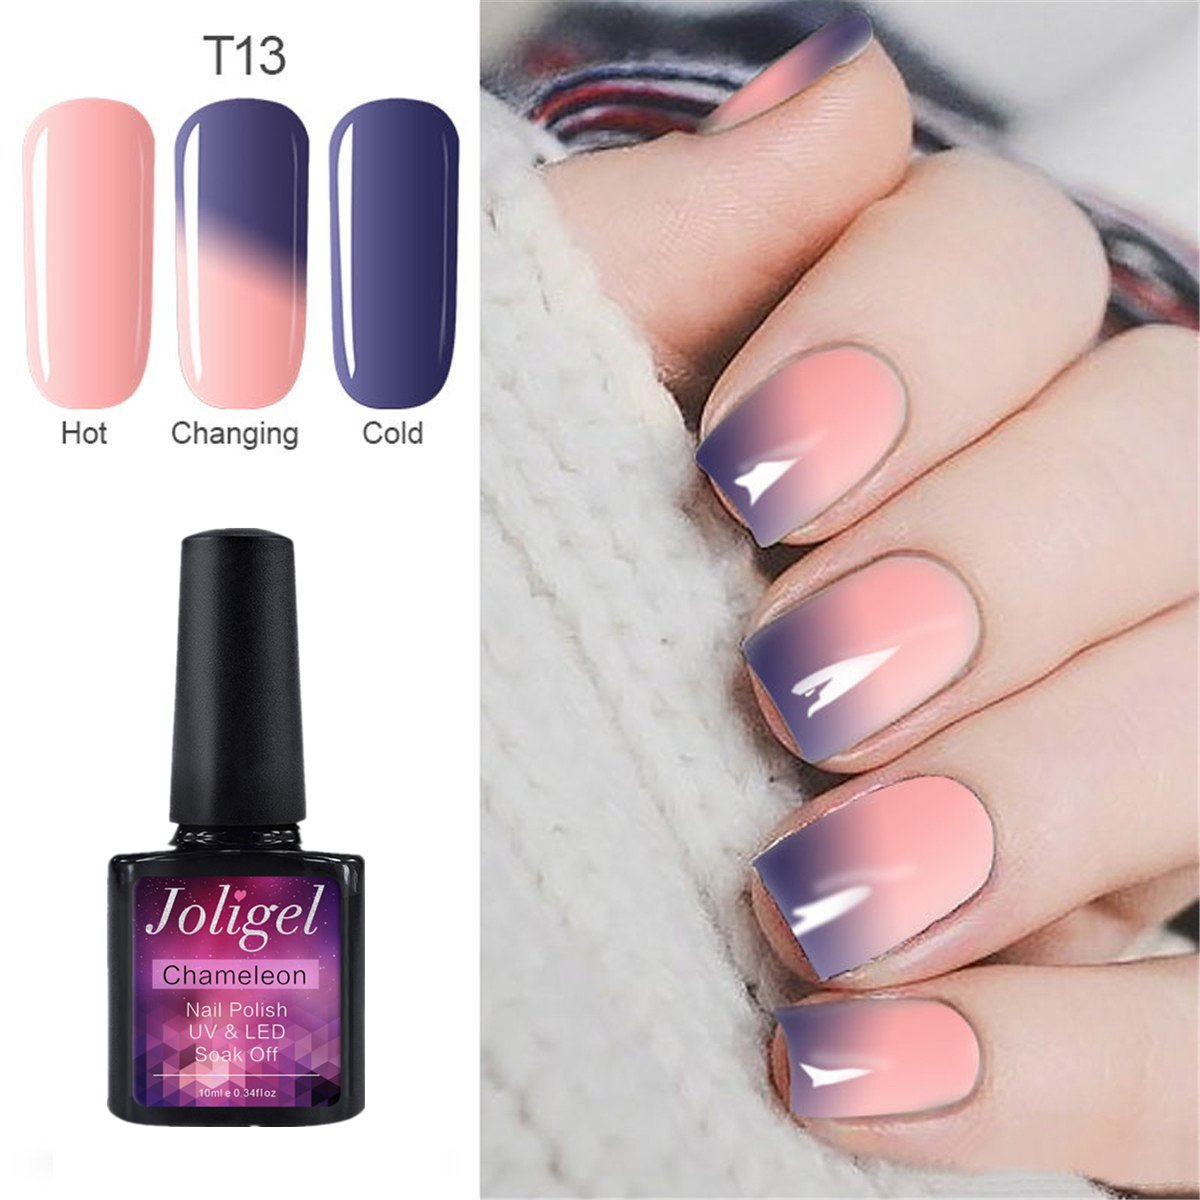 Joligel UV LED Esmalte Uñas Gel Kit, 6pcs Esmaltes Semipermanentes Camaleón Cambio de Color con Temperatura Soak Off 10ML Laca Shellac Manicura ...